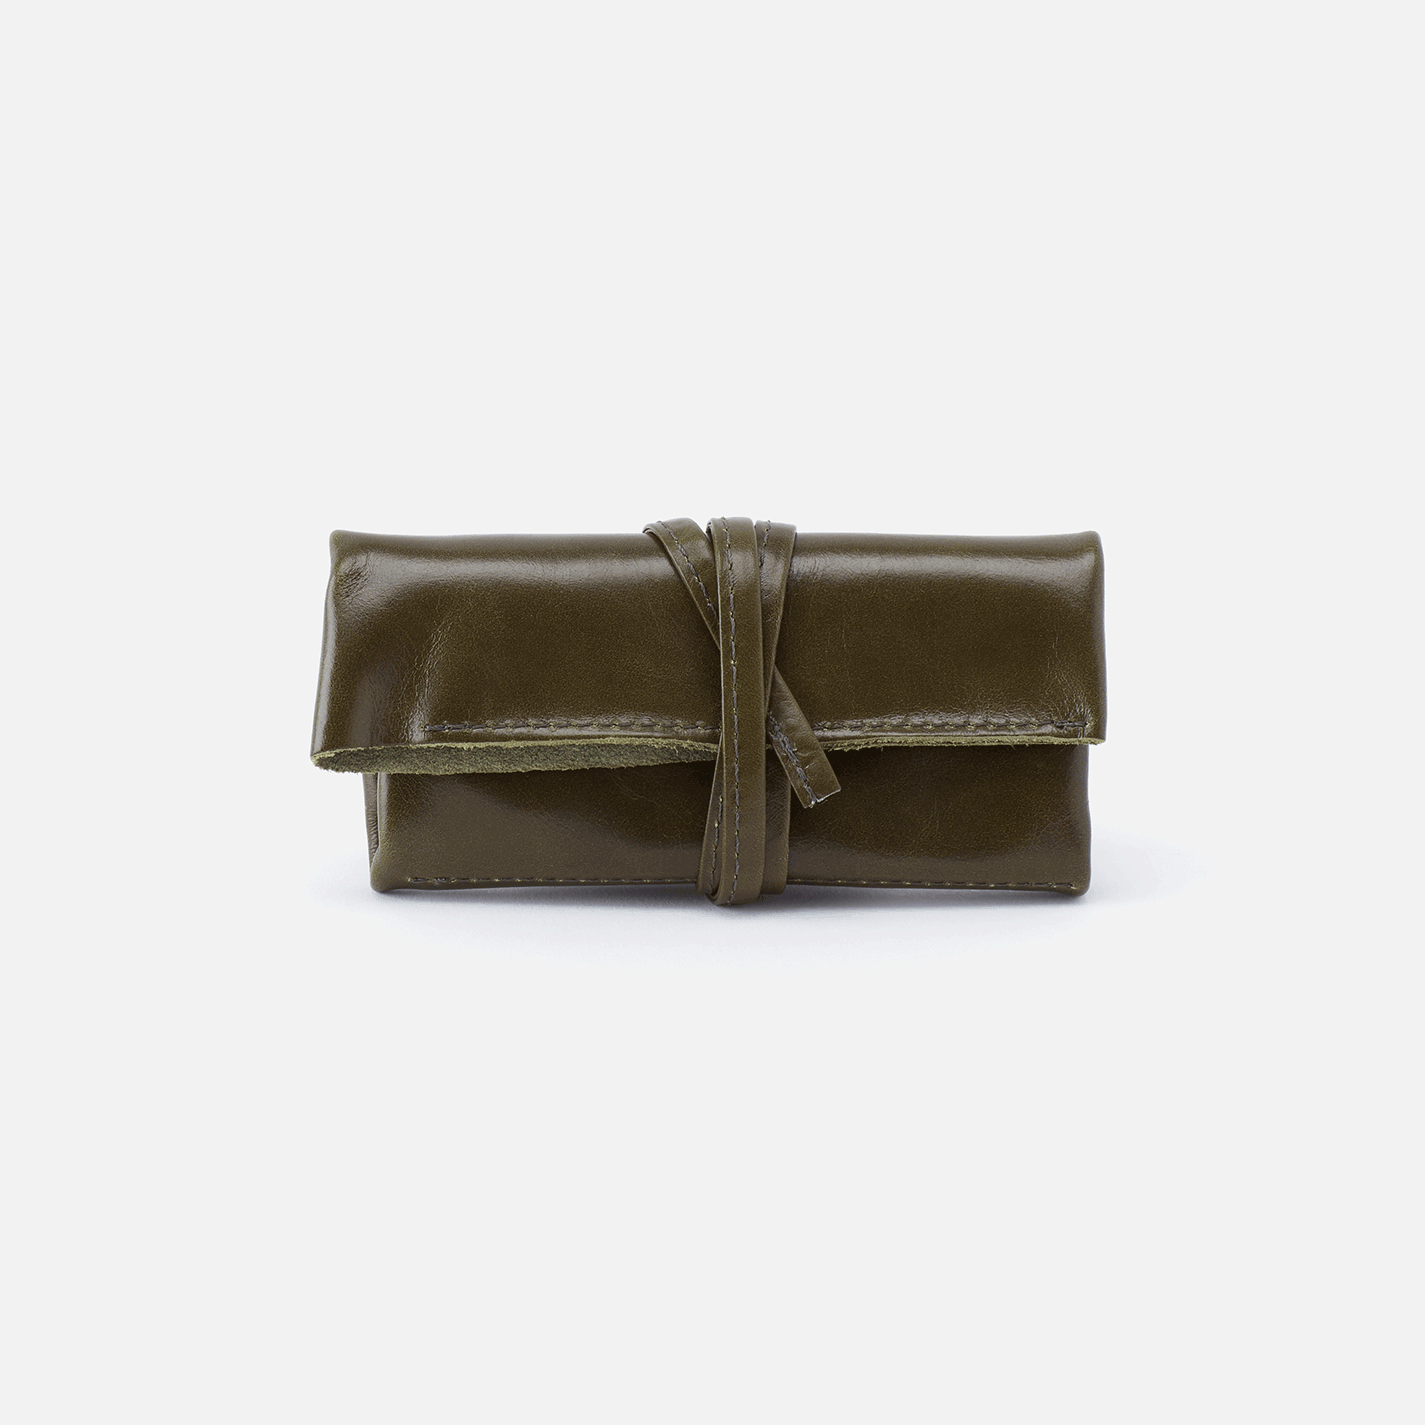 Dasher Jewelry Roll Jewelry Roll Leather Jewelry Green Leather